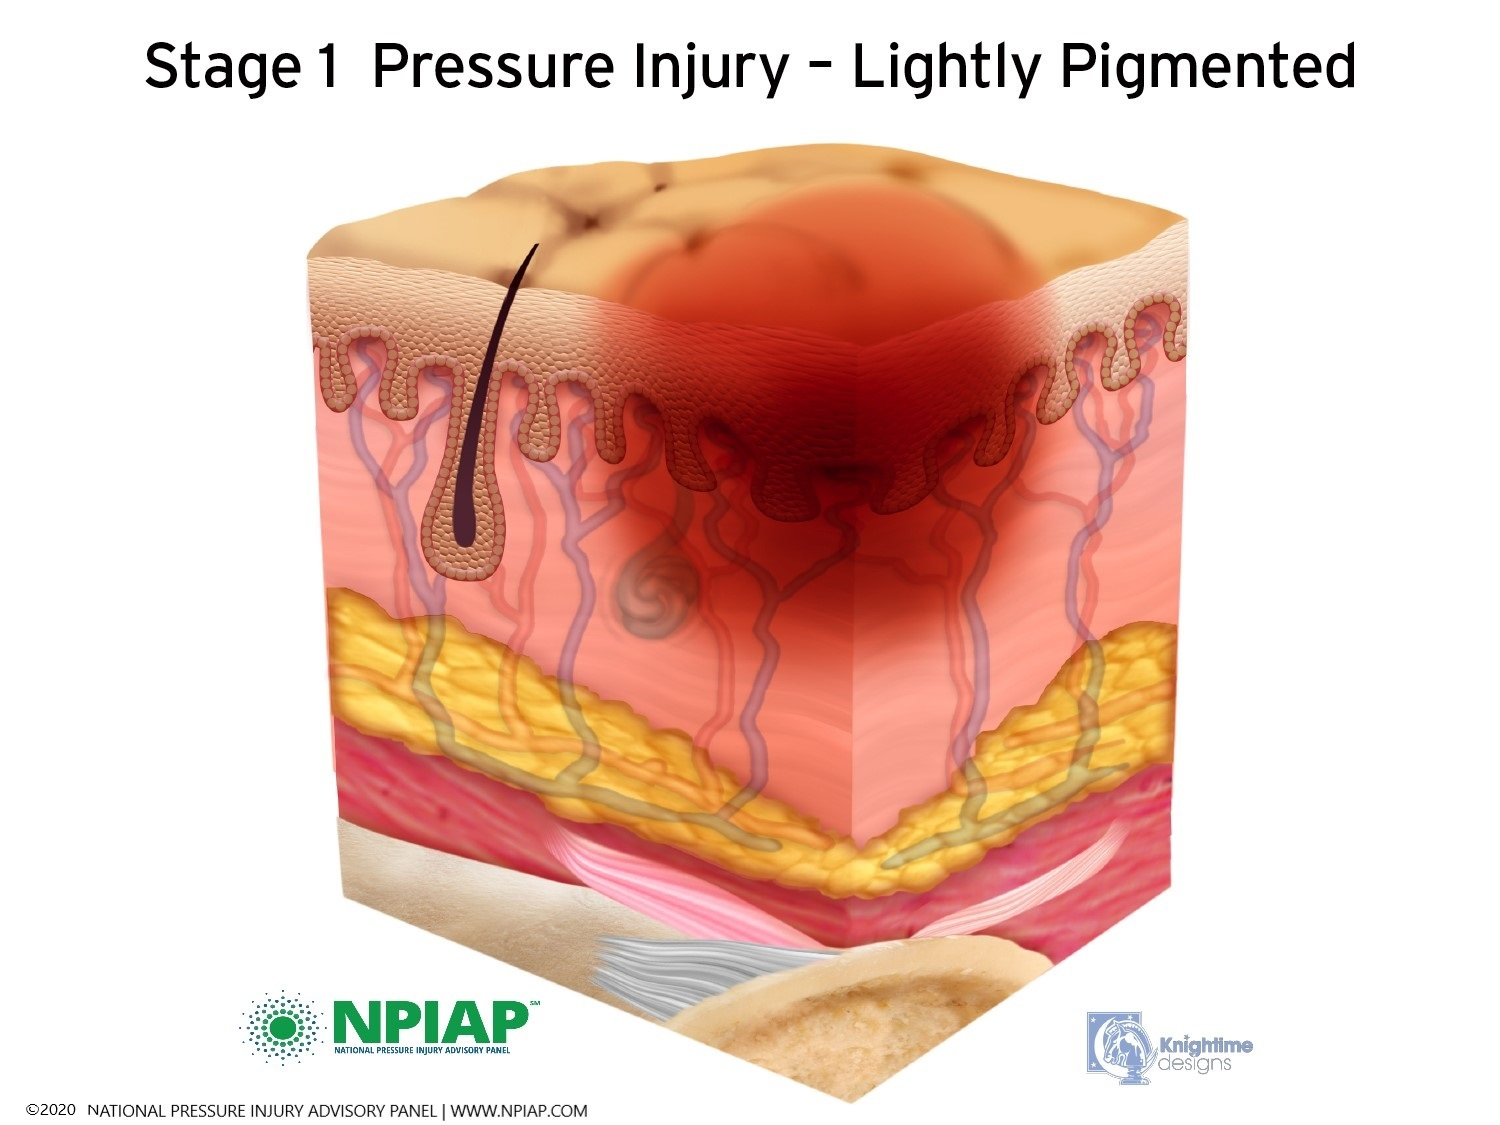 Stage 1 Pressure Injury - Lightly Pigmented